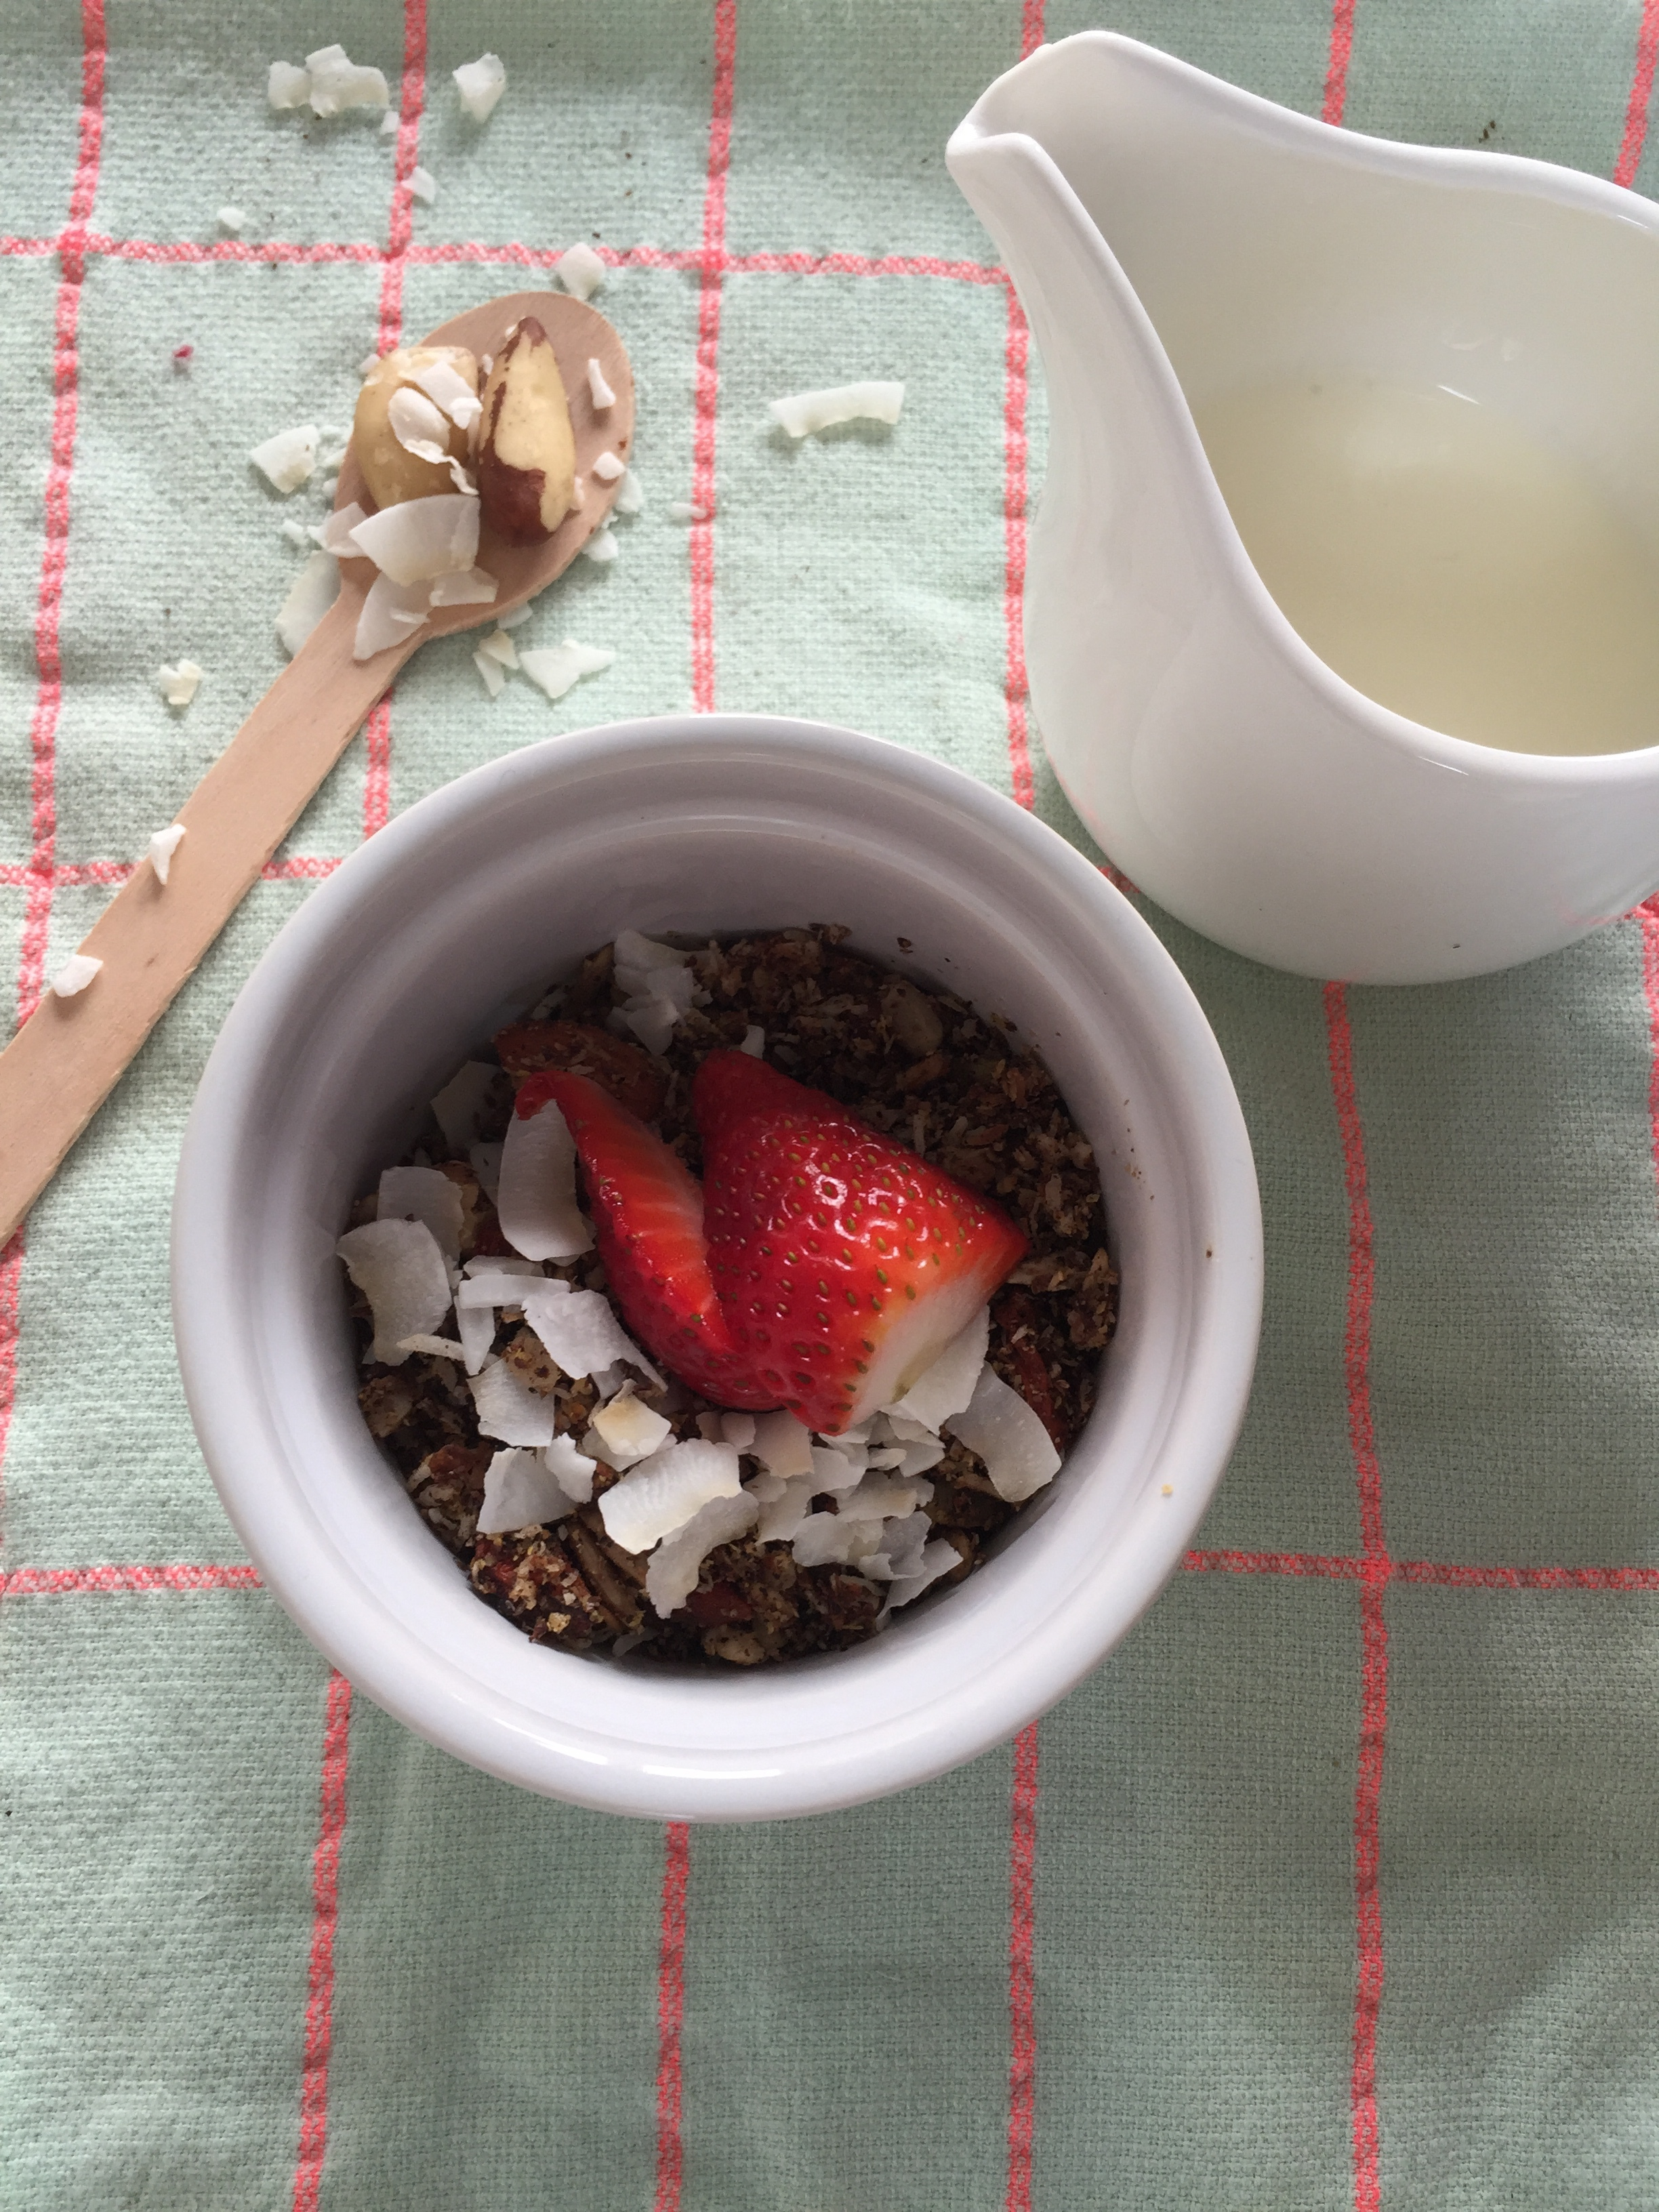 - Prep Time: 10 mins Makes: 10 ServingsIngredients3 cups roughly chopped almonds, brazil nuts, walnuts and/or macadamias½ cup sunflower seeds & pepitas1 cup coconut shredded½ cup dessicated coconut½ cup ground flax meal¼ cup goji berries2-3 tablespoons coconut oilA pinch of salt* Organic where possible is preferred, nuts are always rawMethod1. Mix all dry ingredients in bowl and coat with coconut oil. Spread out on an oven tray and roast for 20 minutes at about 150 degrees until golden brown.2. When you eat, add plain yoghurt (if tolerated), almond milk and some grated apple or berries is always yummy but experiment with what your personal tastes are!Note: You can add gluten free, organic rolled oats if desired.